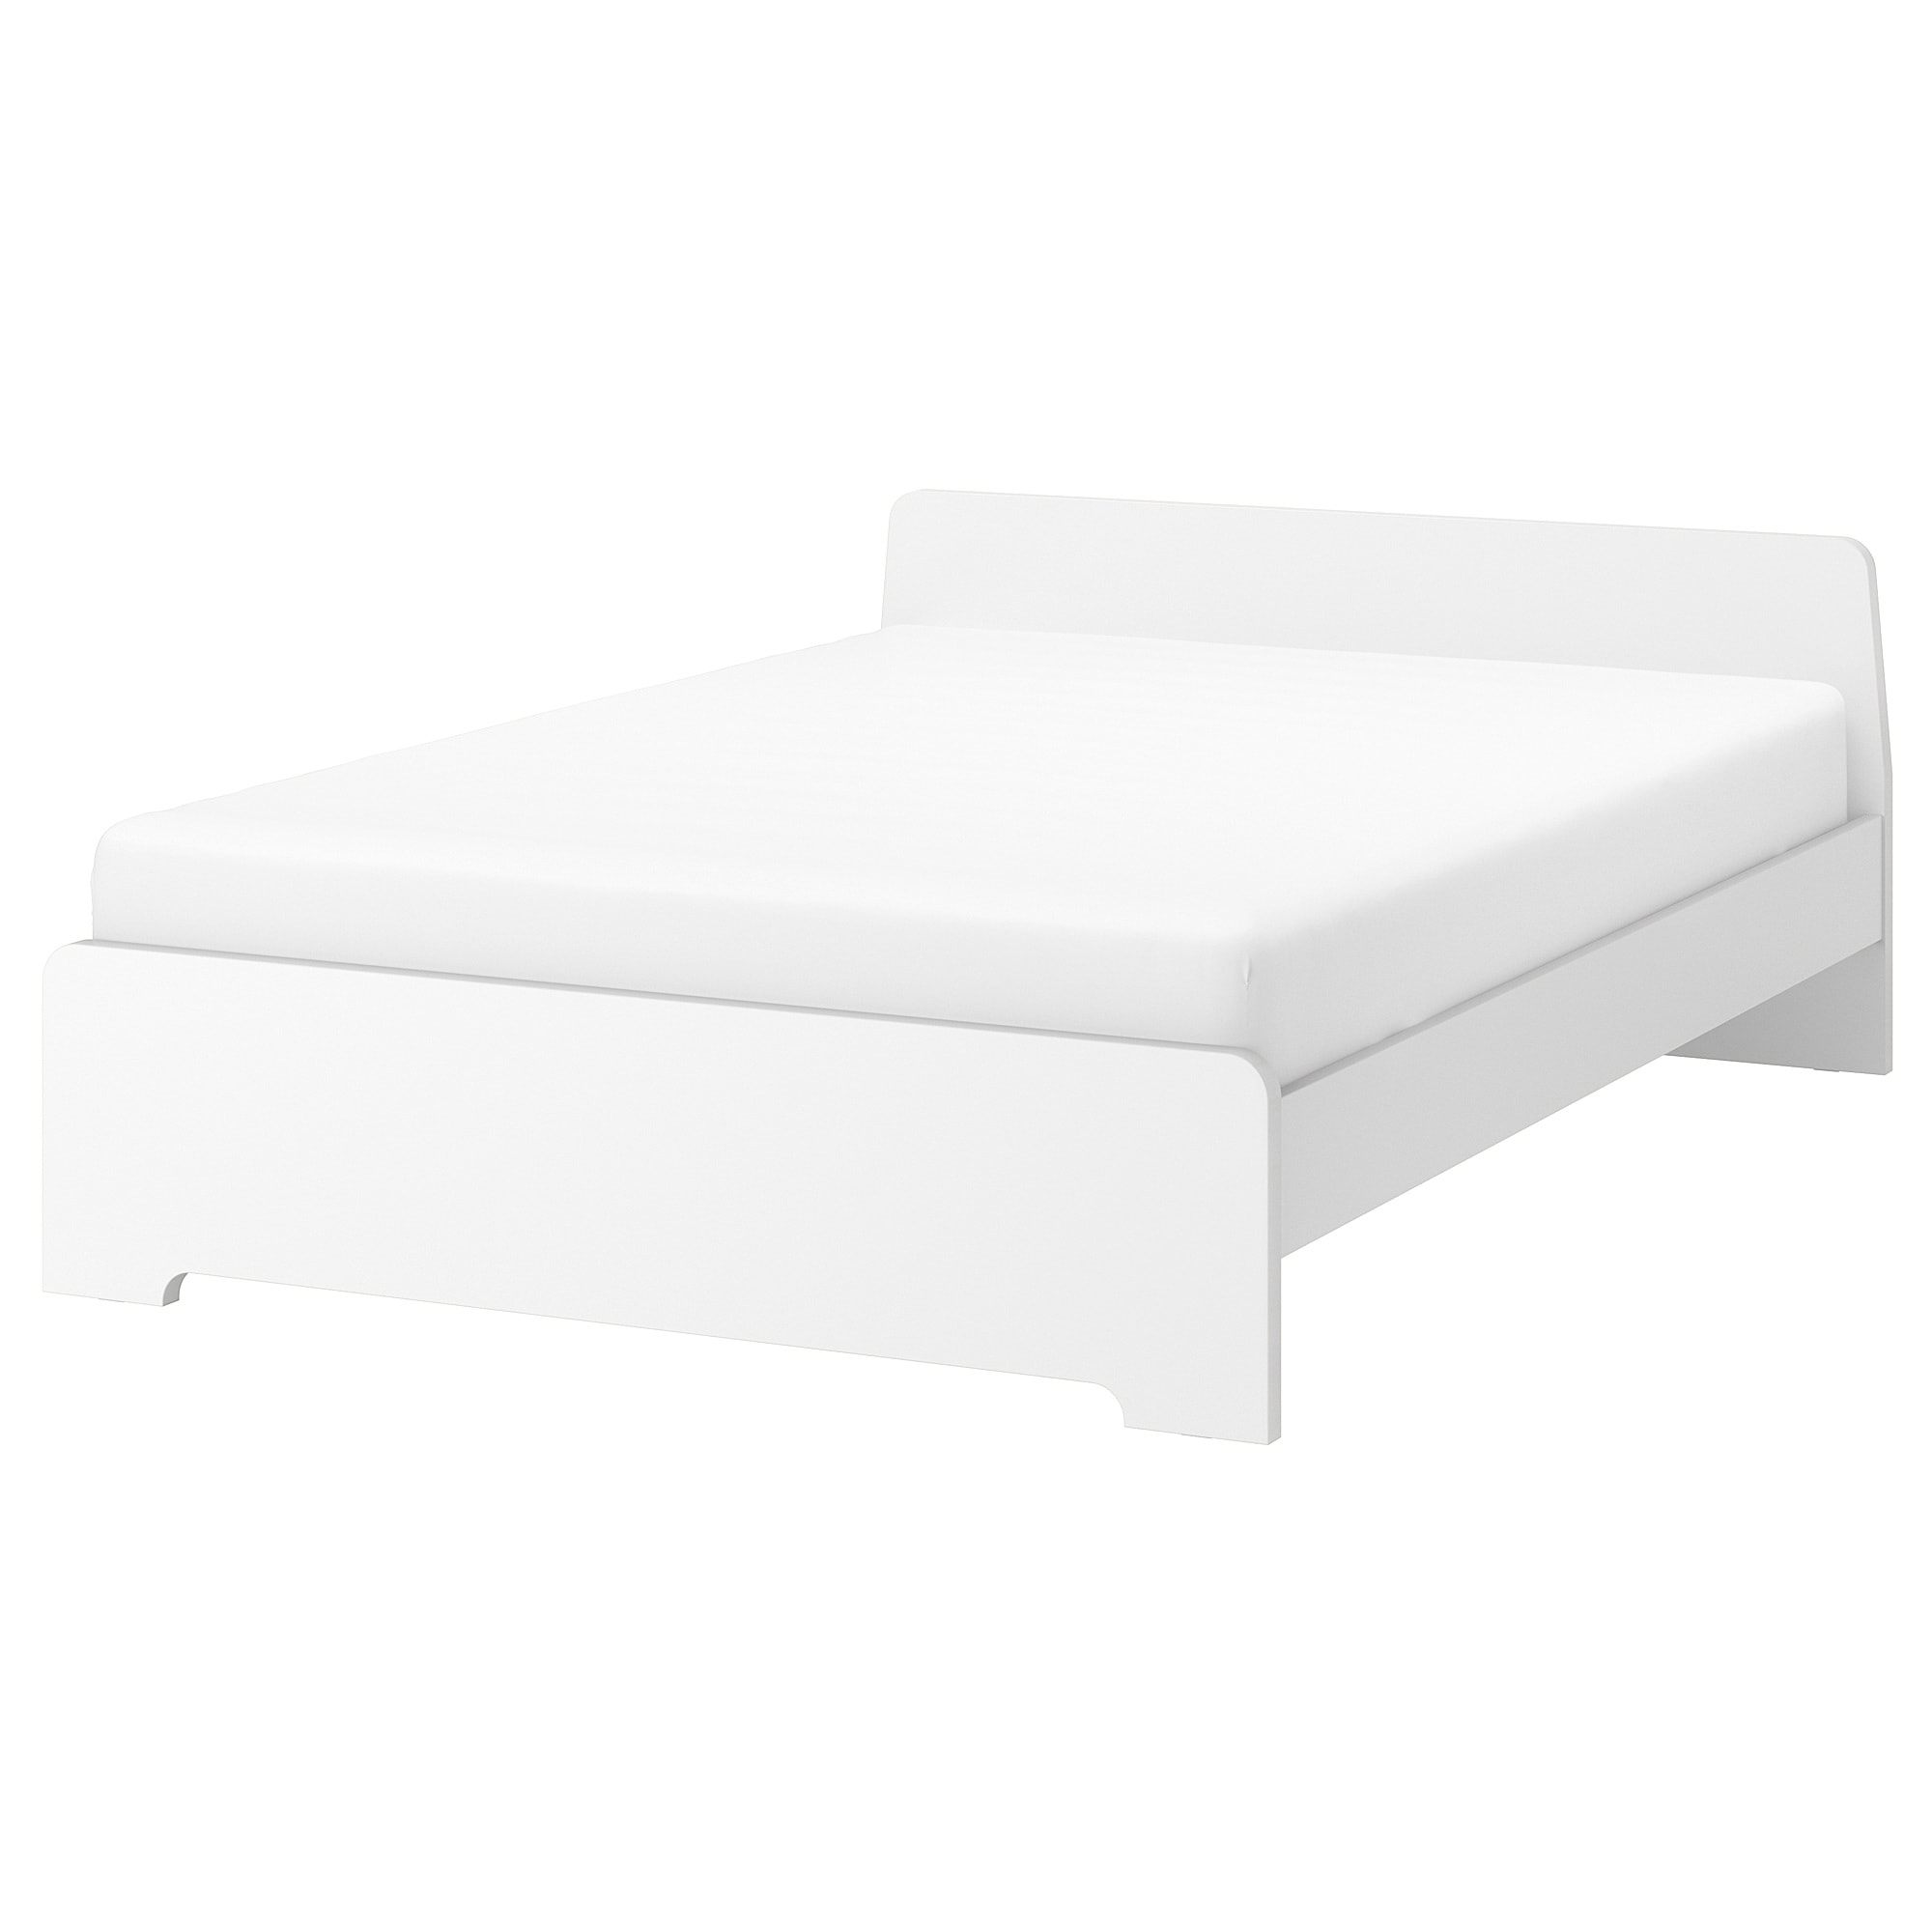 Lit Queen Size Ikea Magnifique King Size Beds